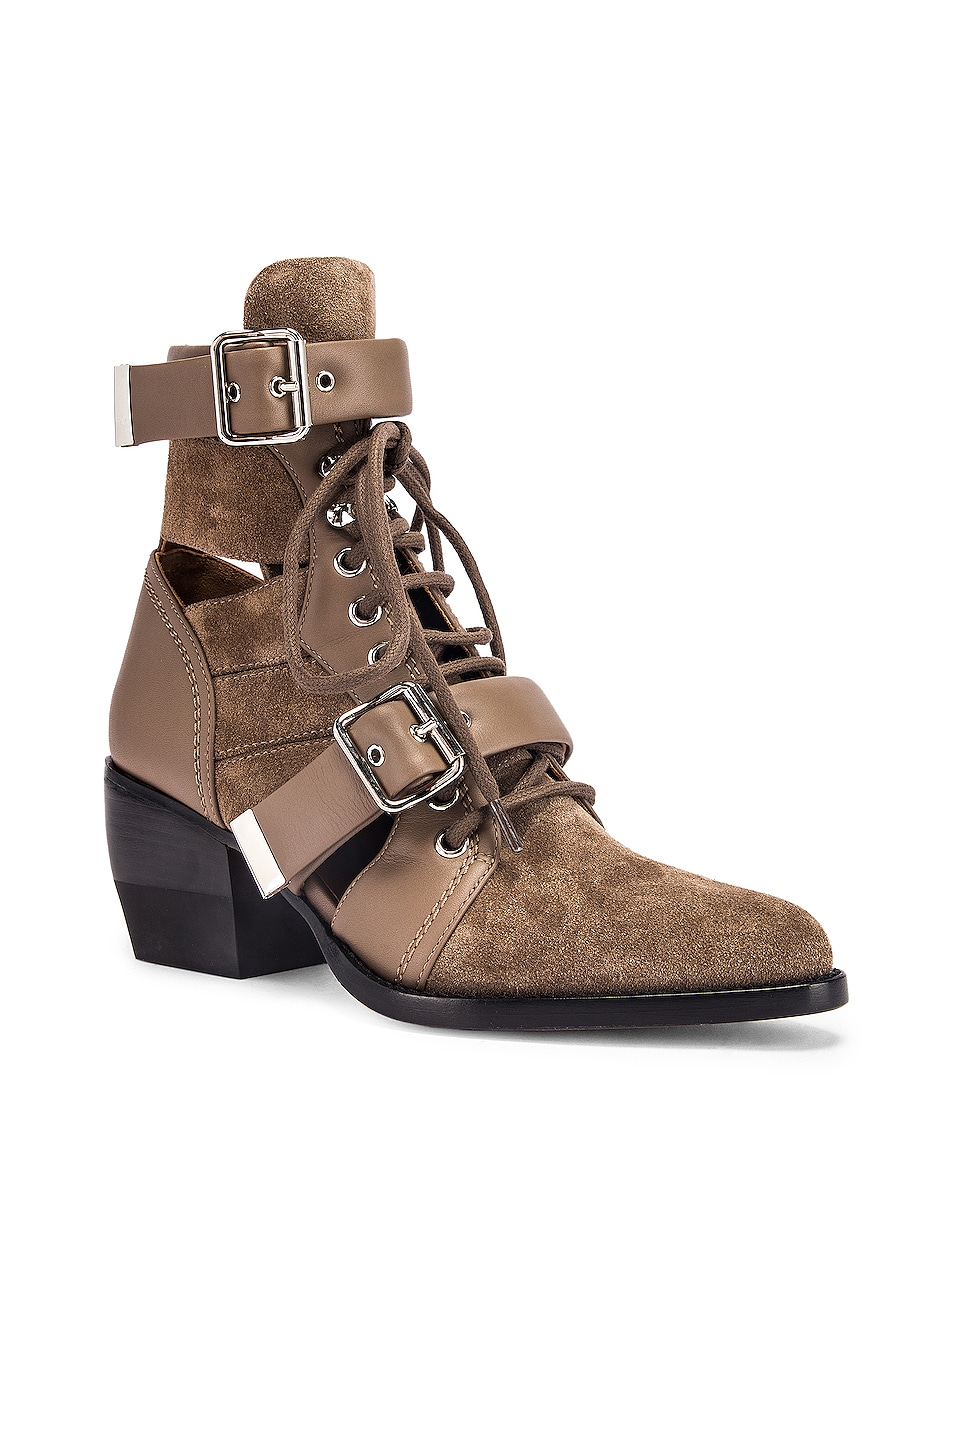 Image 2 of Chloe Lace Up Buckle Boots in Motty Grey